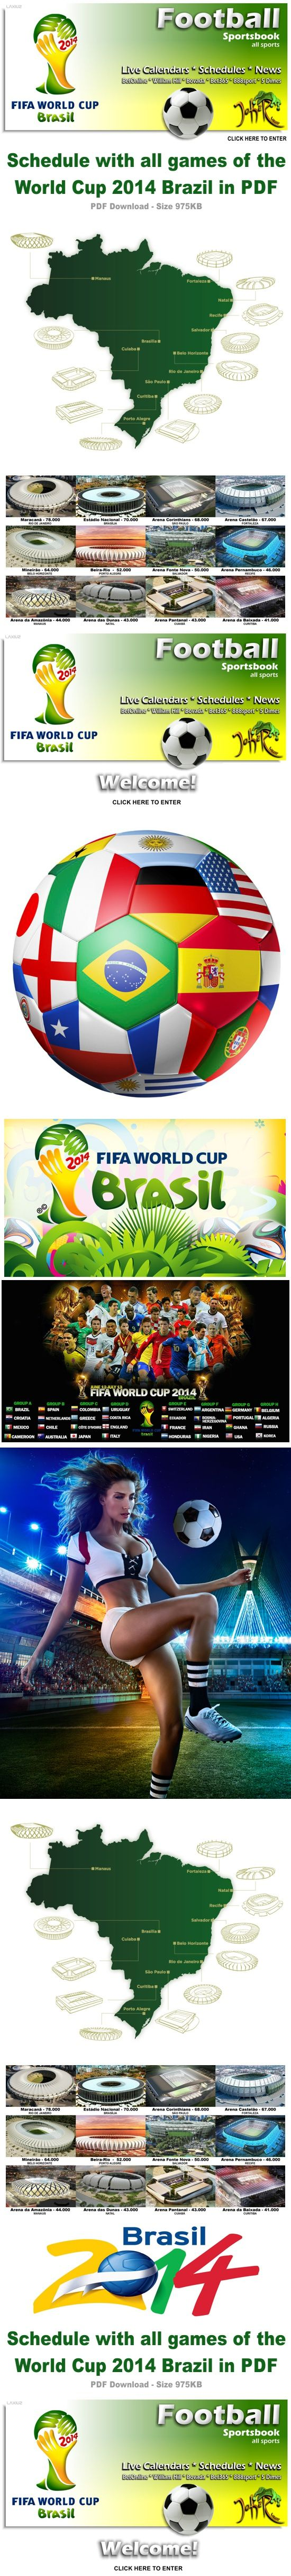 FIFA World Cup 2014 NEWS!! Schedule with all games of the World Cup 2014 Brazil in PDF  PDF Download - Size 975KB > http://www.top1hits.com/ap/mysp.php?id=87 *** #worldcup #FIFAworldCUP #ScheduleWorldCup #sportsbook #news #sportsNews #bettingTips #poker